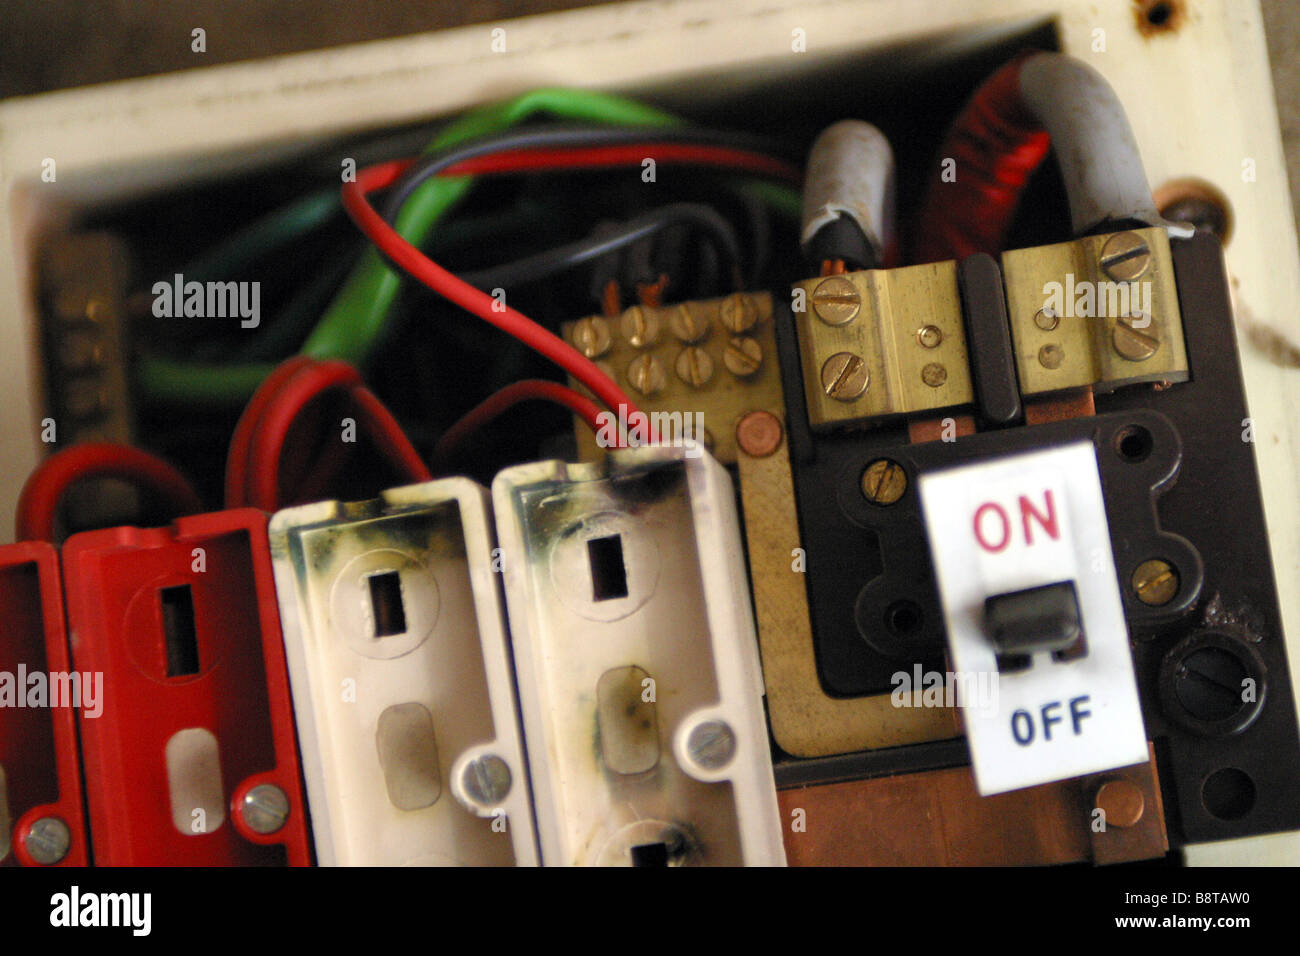 consumer unit box electrical fuse box old wire fuse type in a 1970's house  - Stock